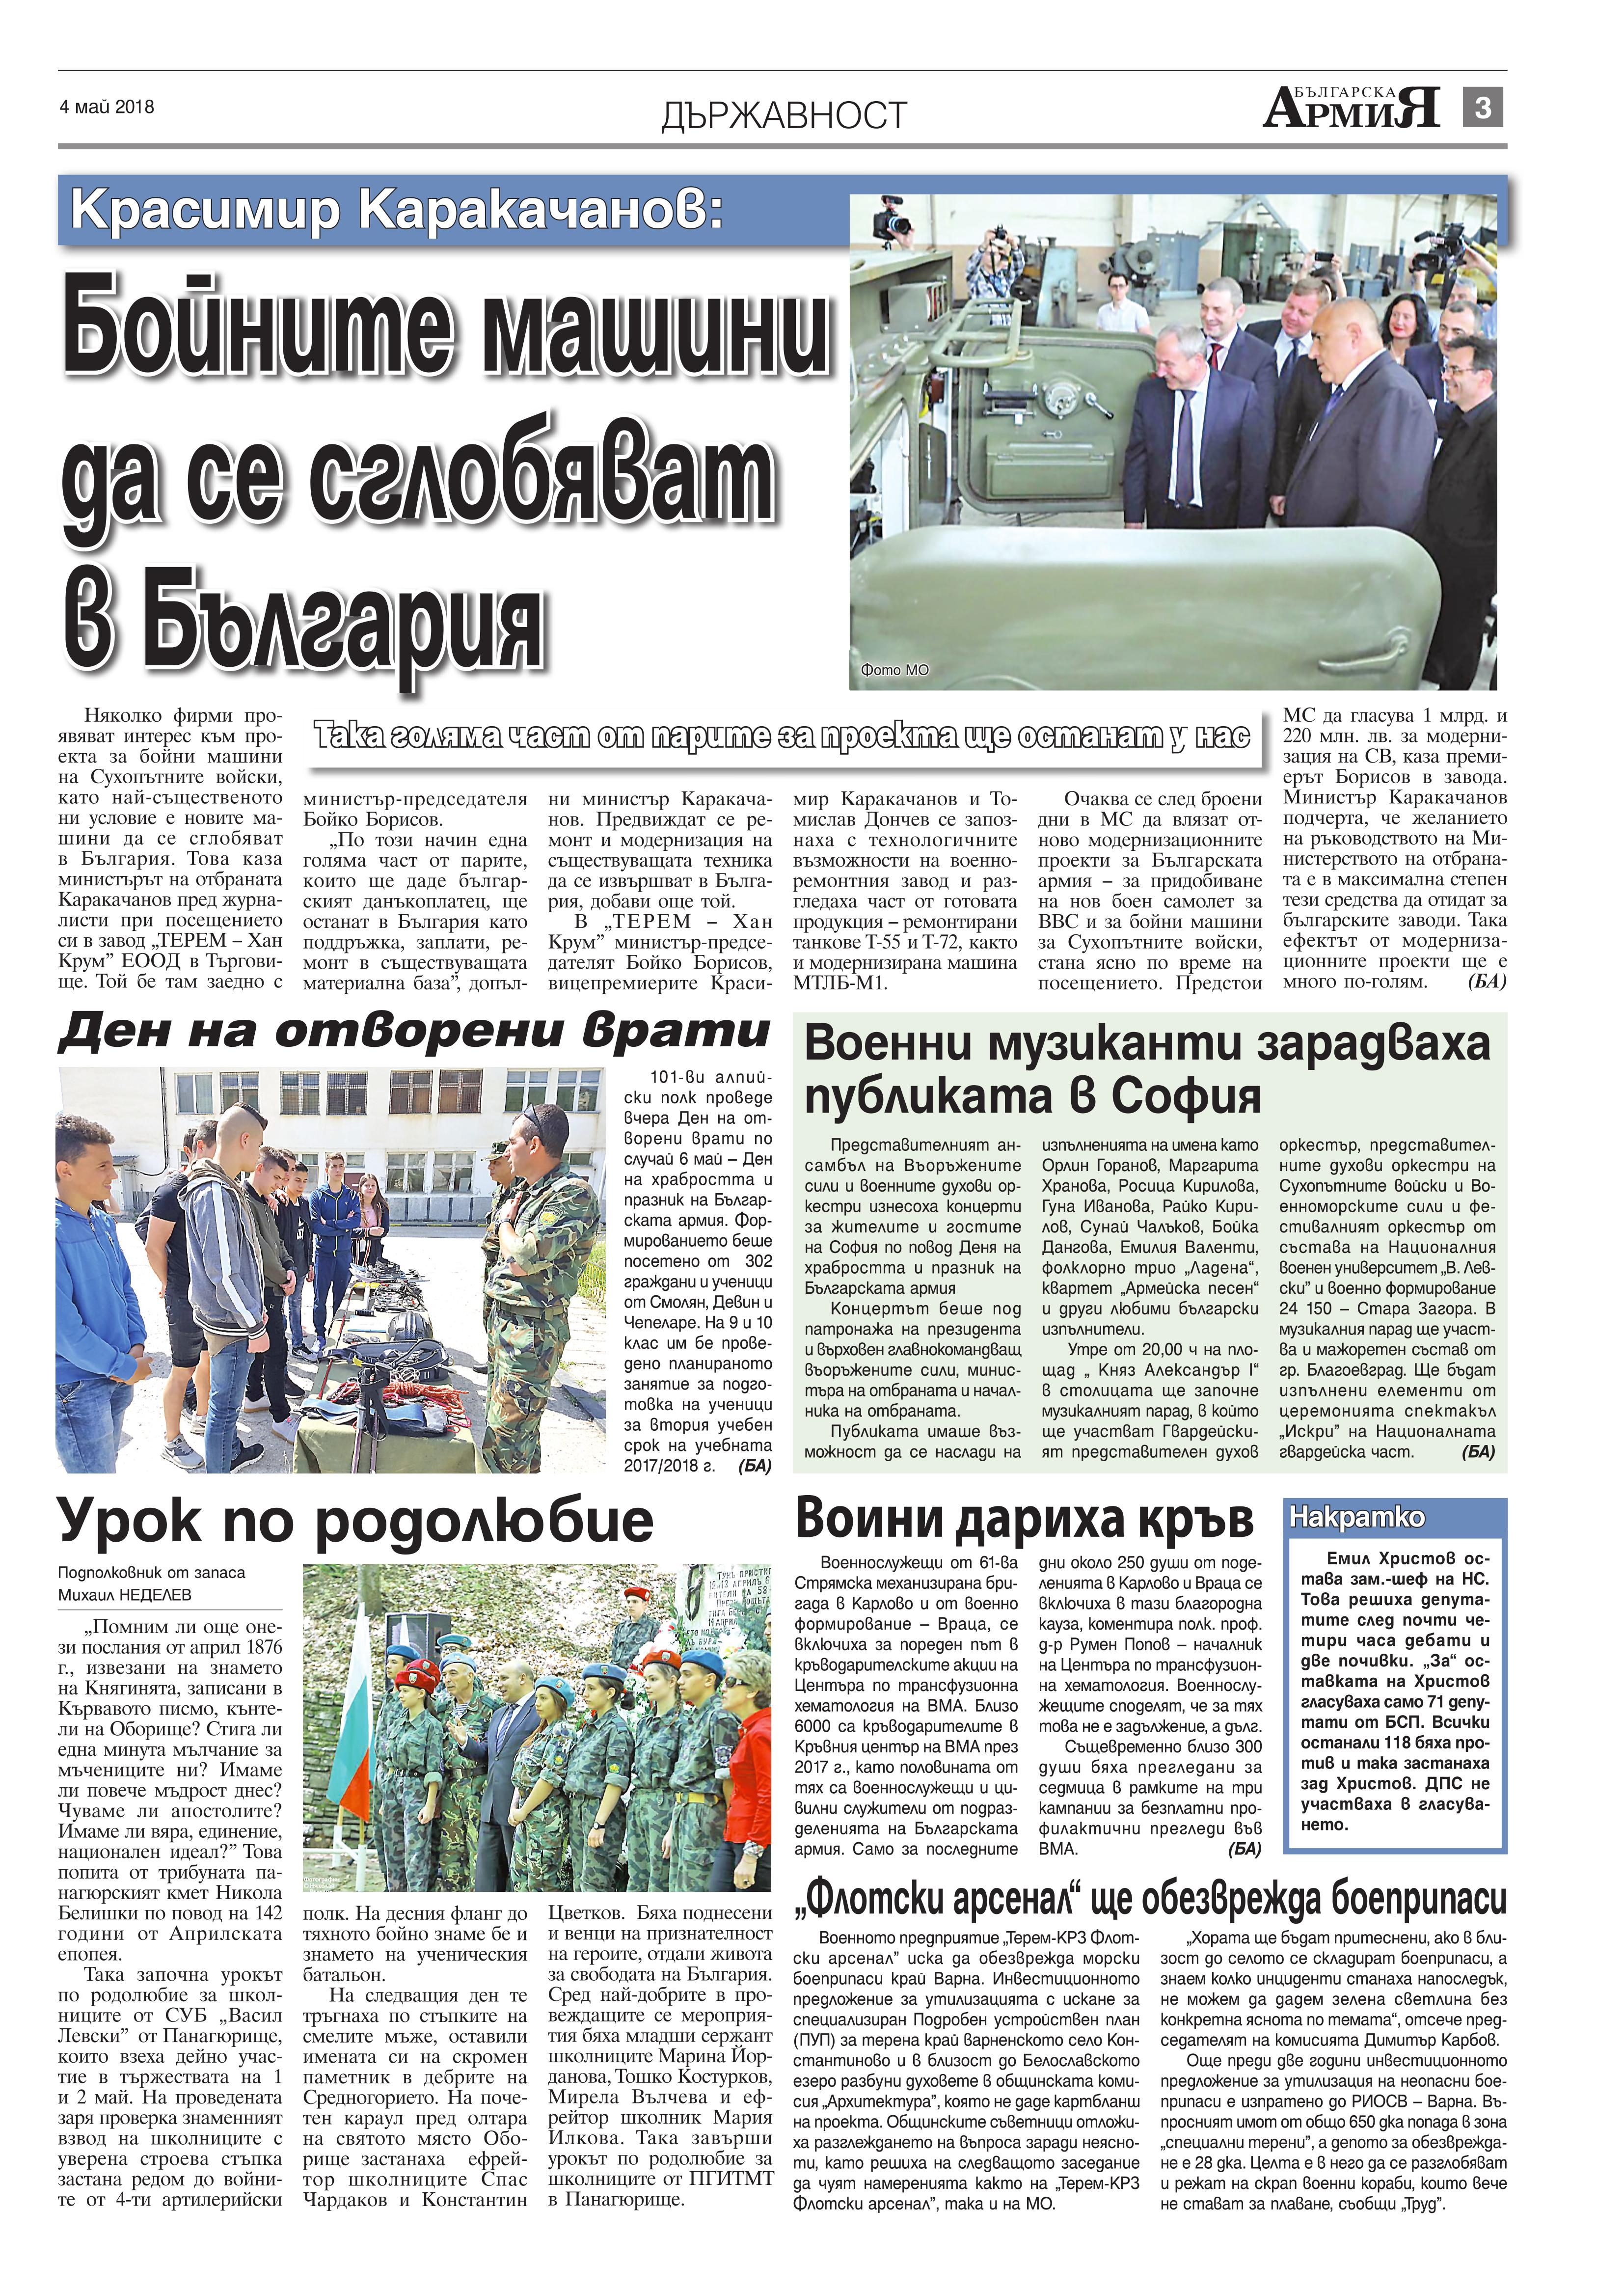 https://armymedia.bg/wp-content/uploads/2015/06/03.page1_-47.jpg